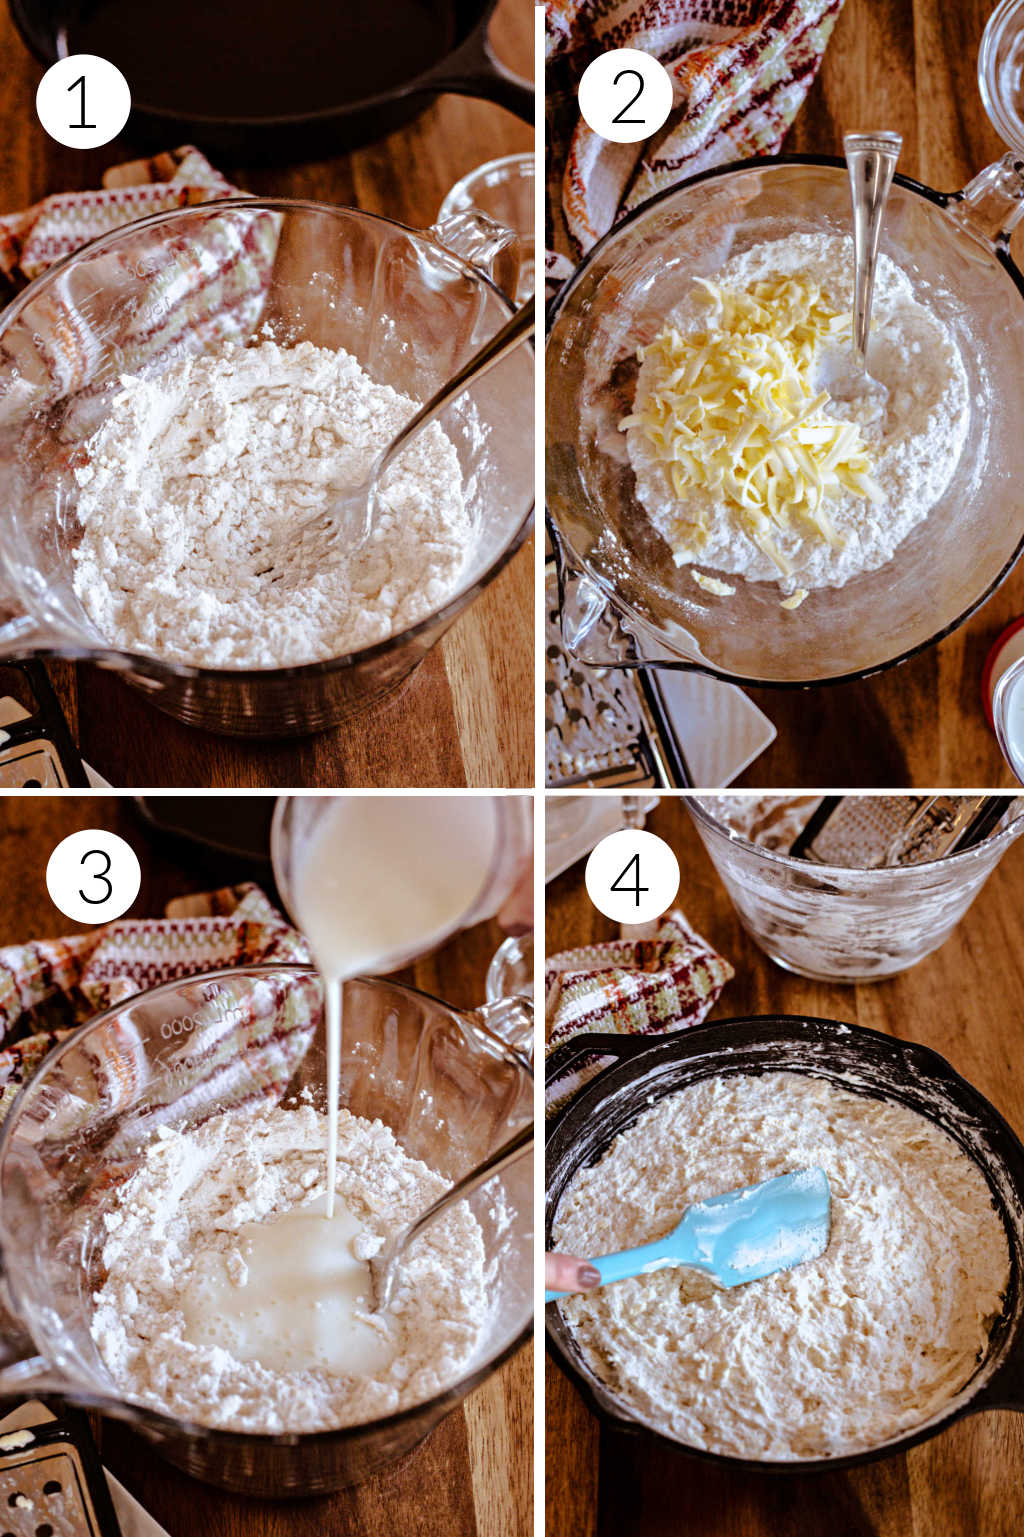 process steps for making biscuit bread in a skillet